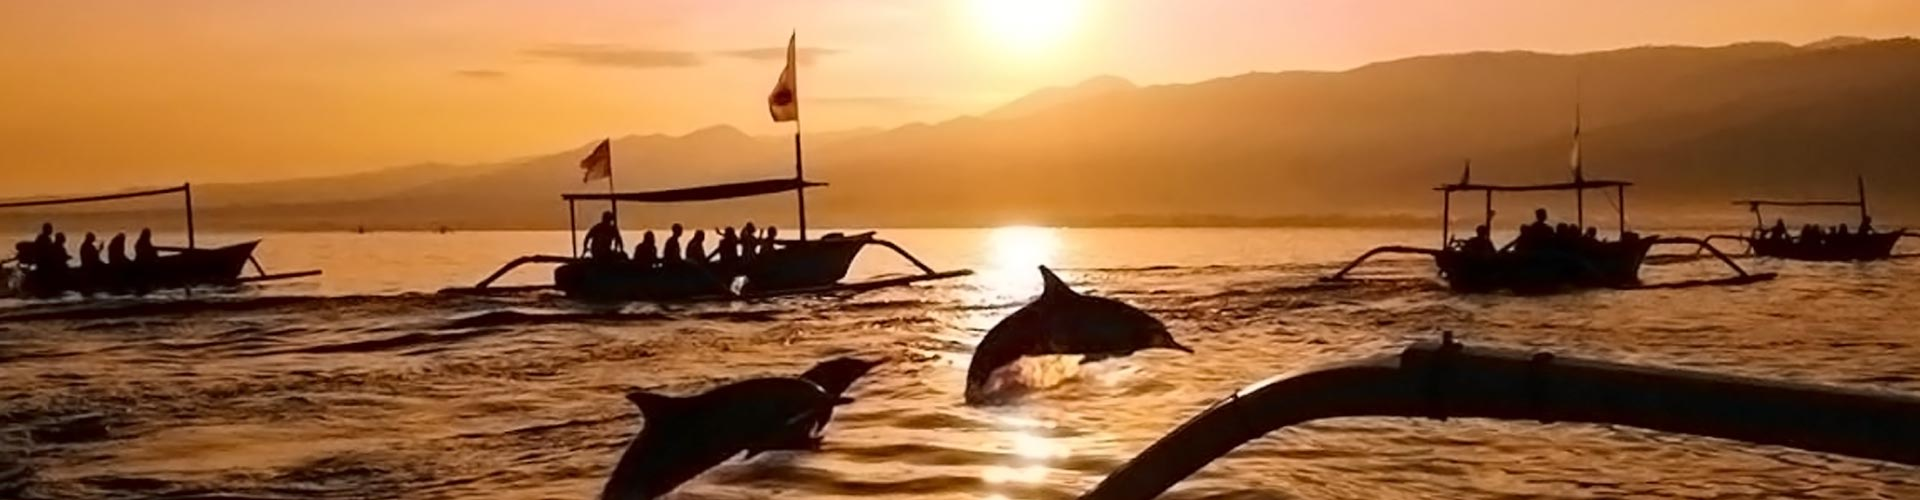 Bali Discovery Dolphin Watching Tour